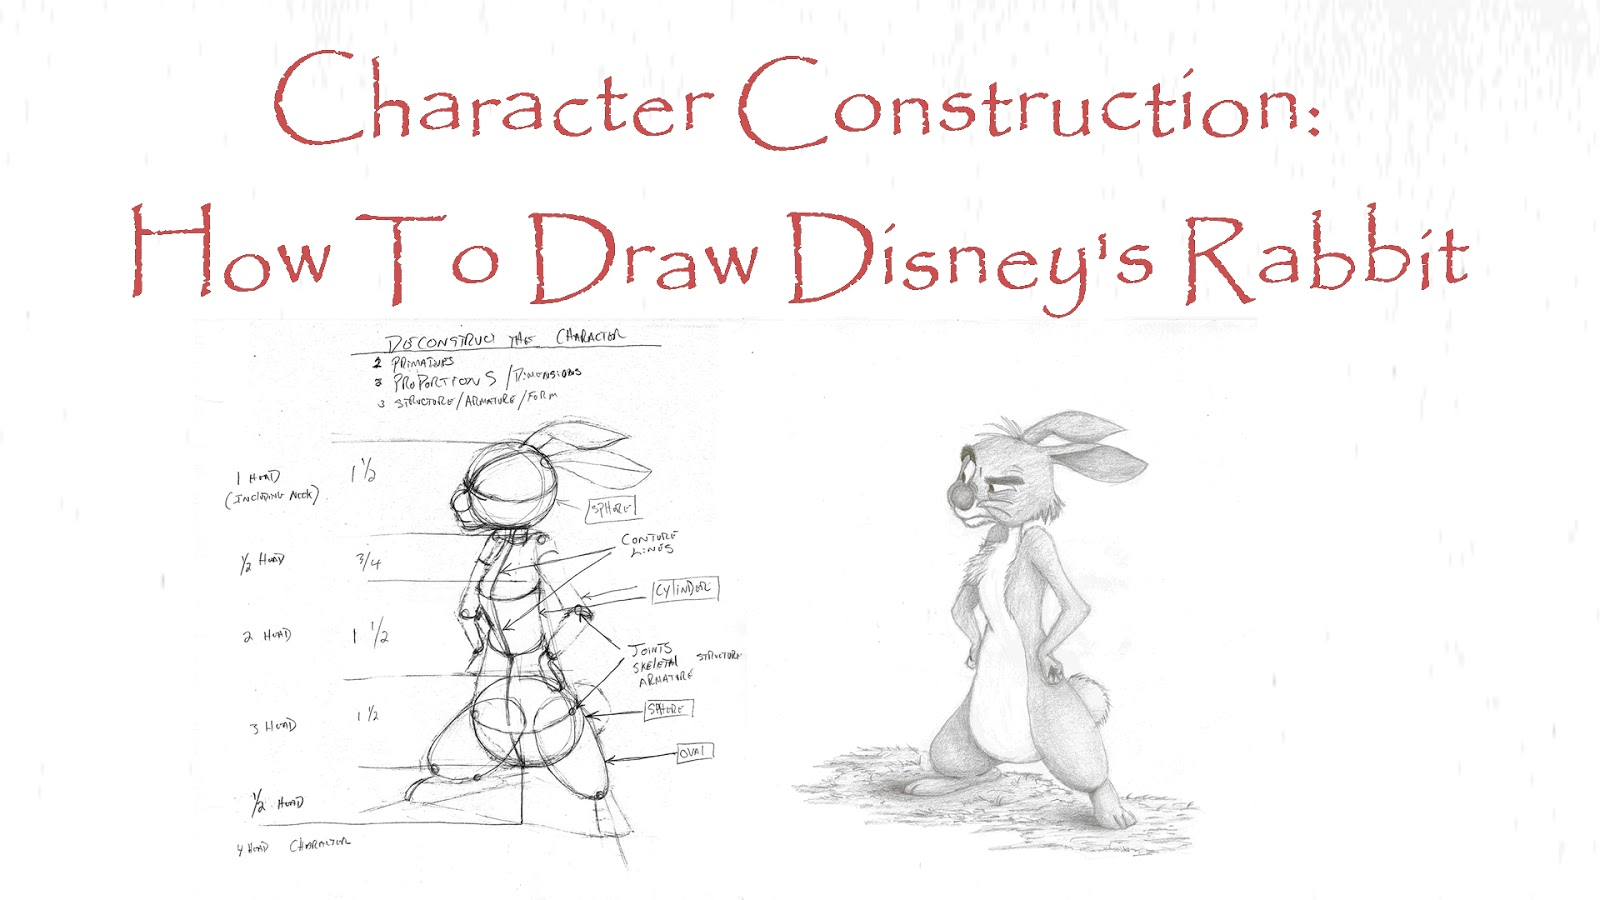 Steven Powers (SMP): Character Construction and 4 Step